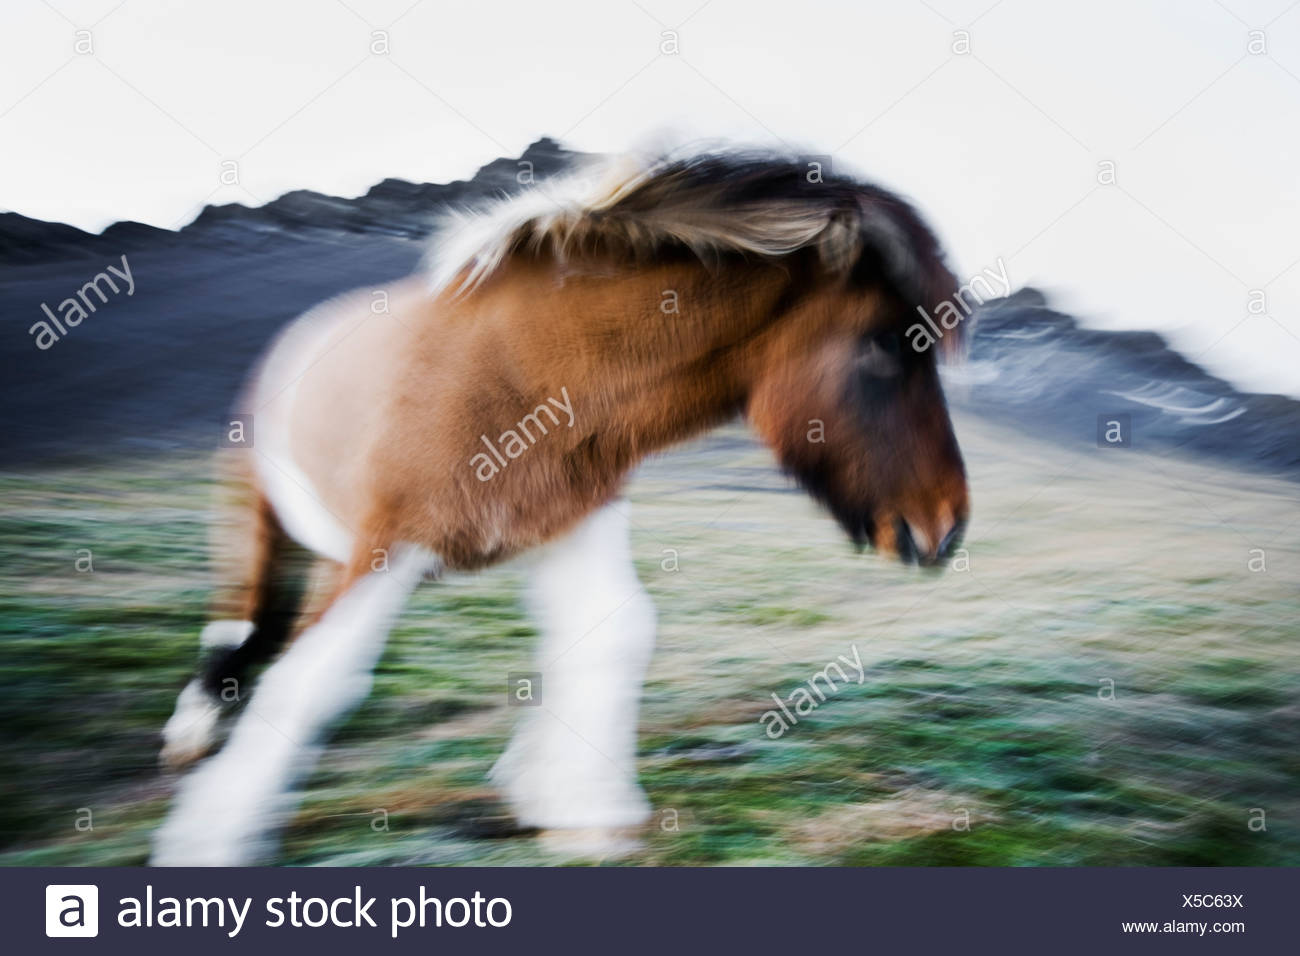 An Icelandic horse in movement, Iceland. - Stock Image